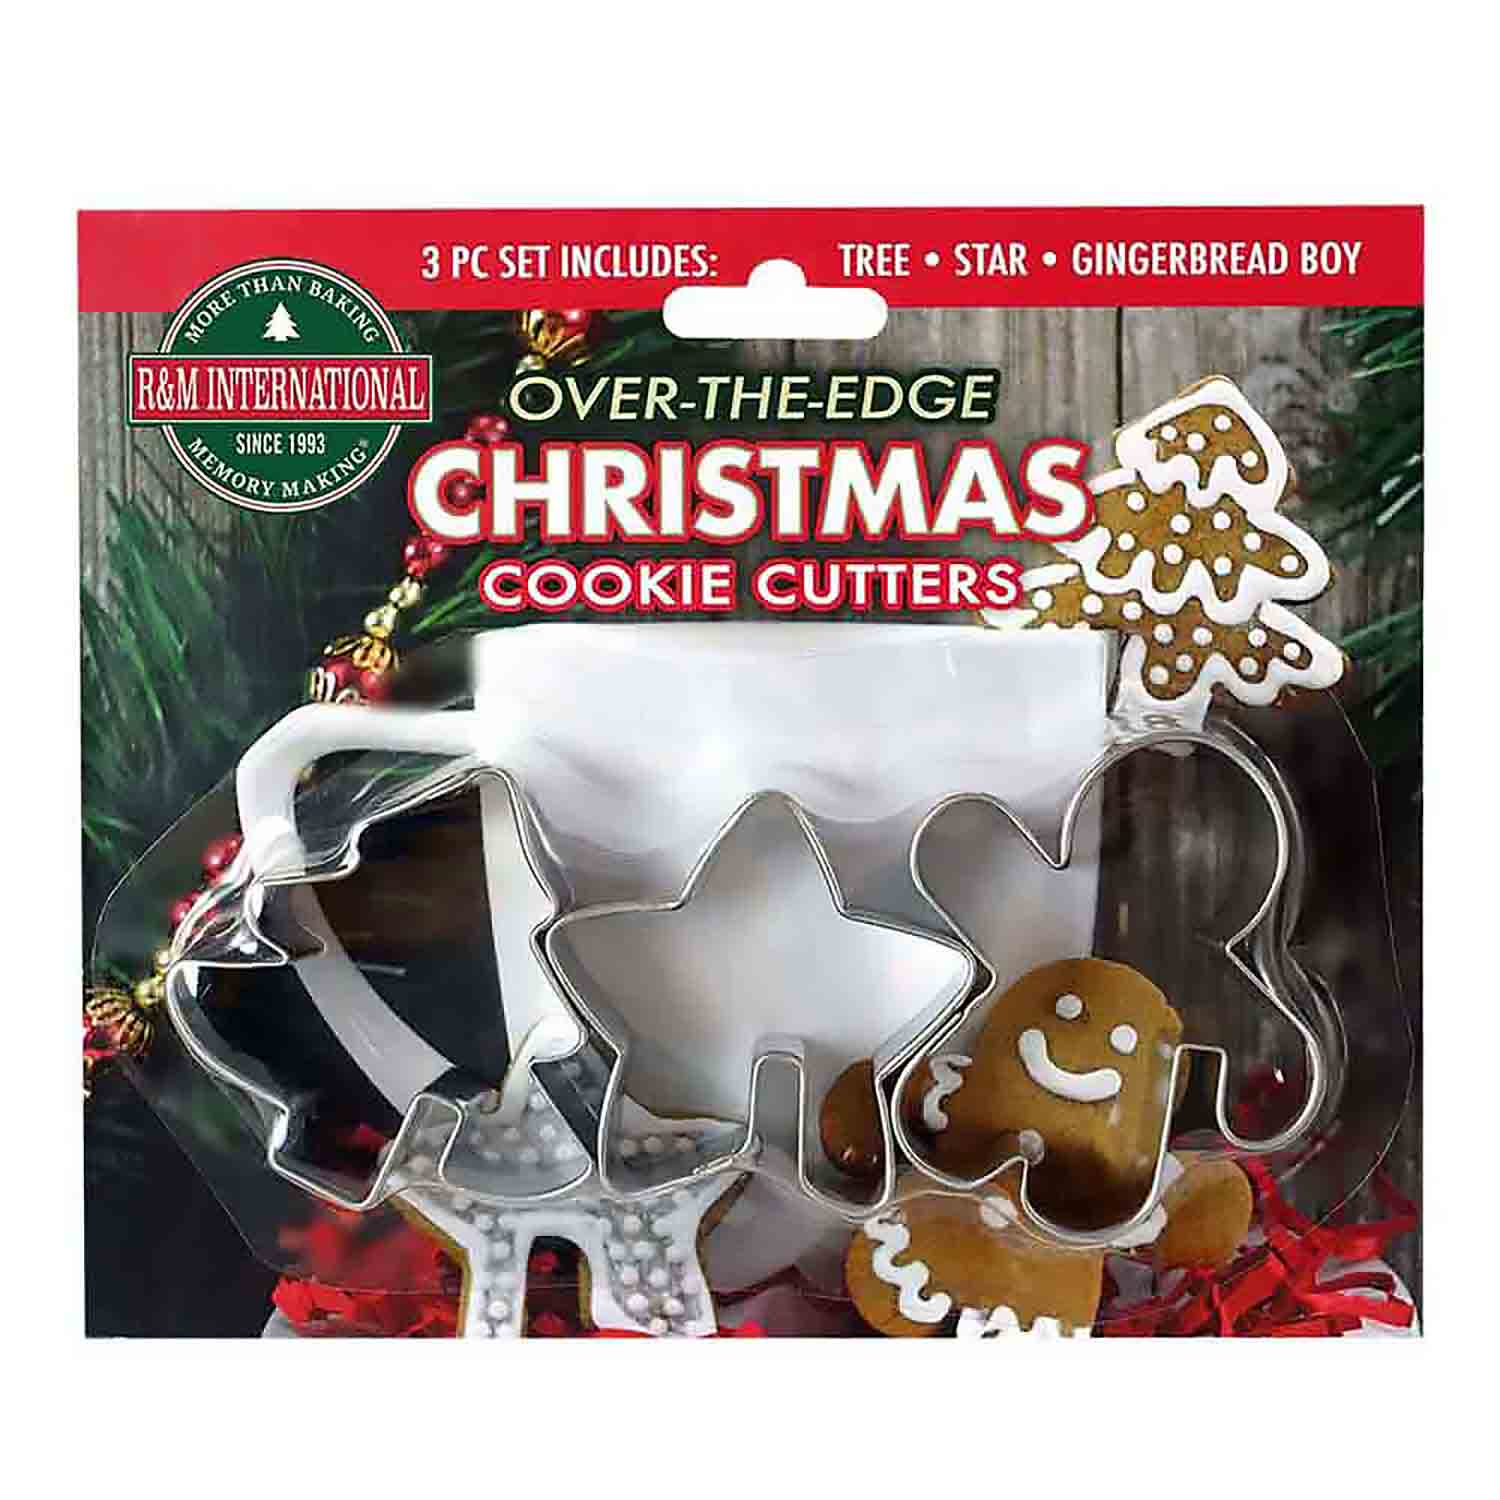 Over-The-Edge Christmas Cookie Cutter Set